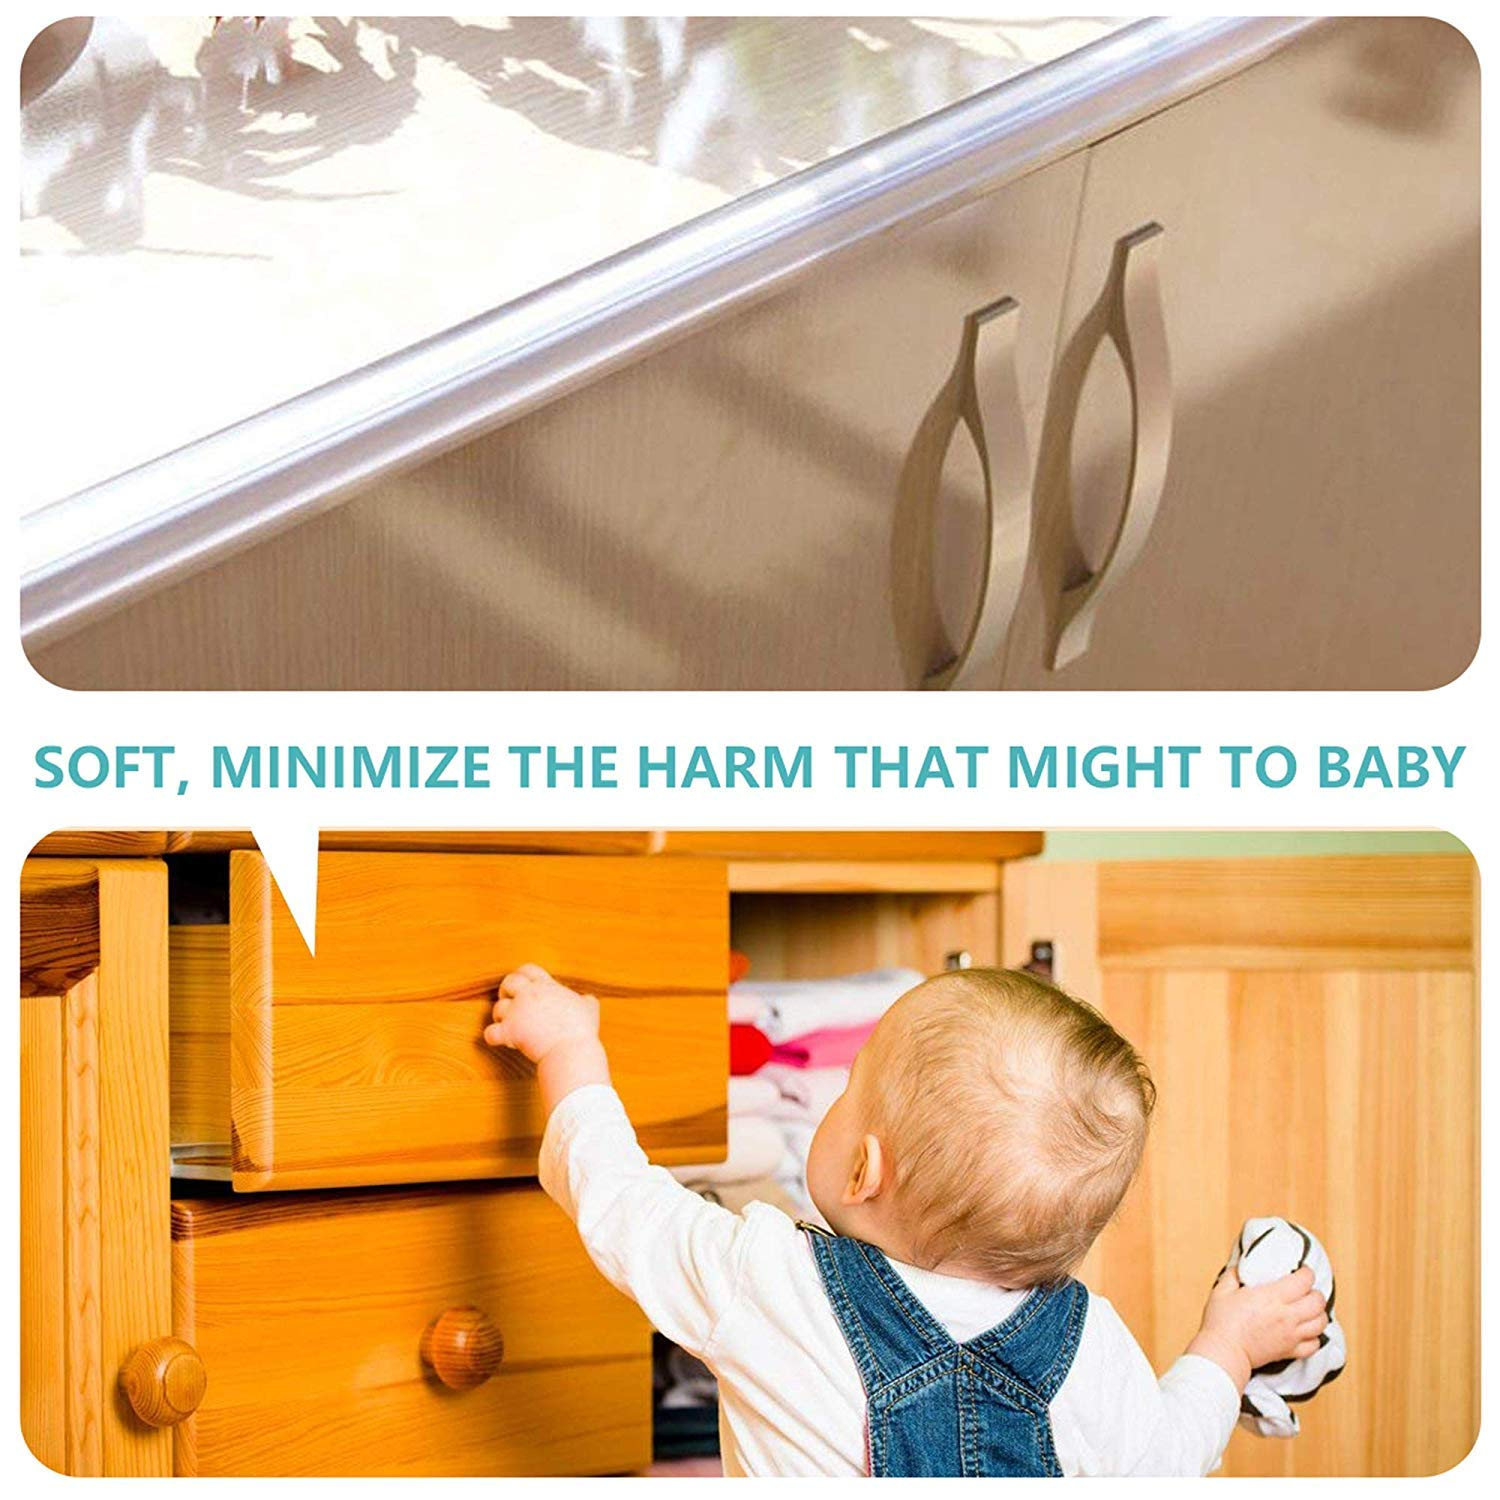 Wemk New Transparent Table Edge Furniture Corner Protectors, 20ft Widen & Thicken Baby Proofing Edge Safety Bumpers Strip, Safety for Child by Wemk (Image #6)